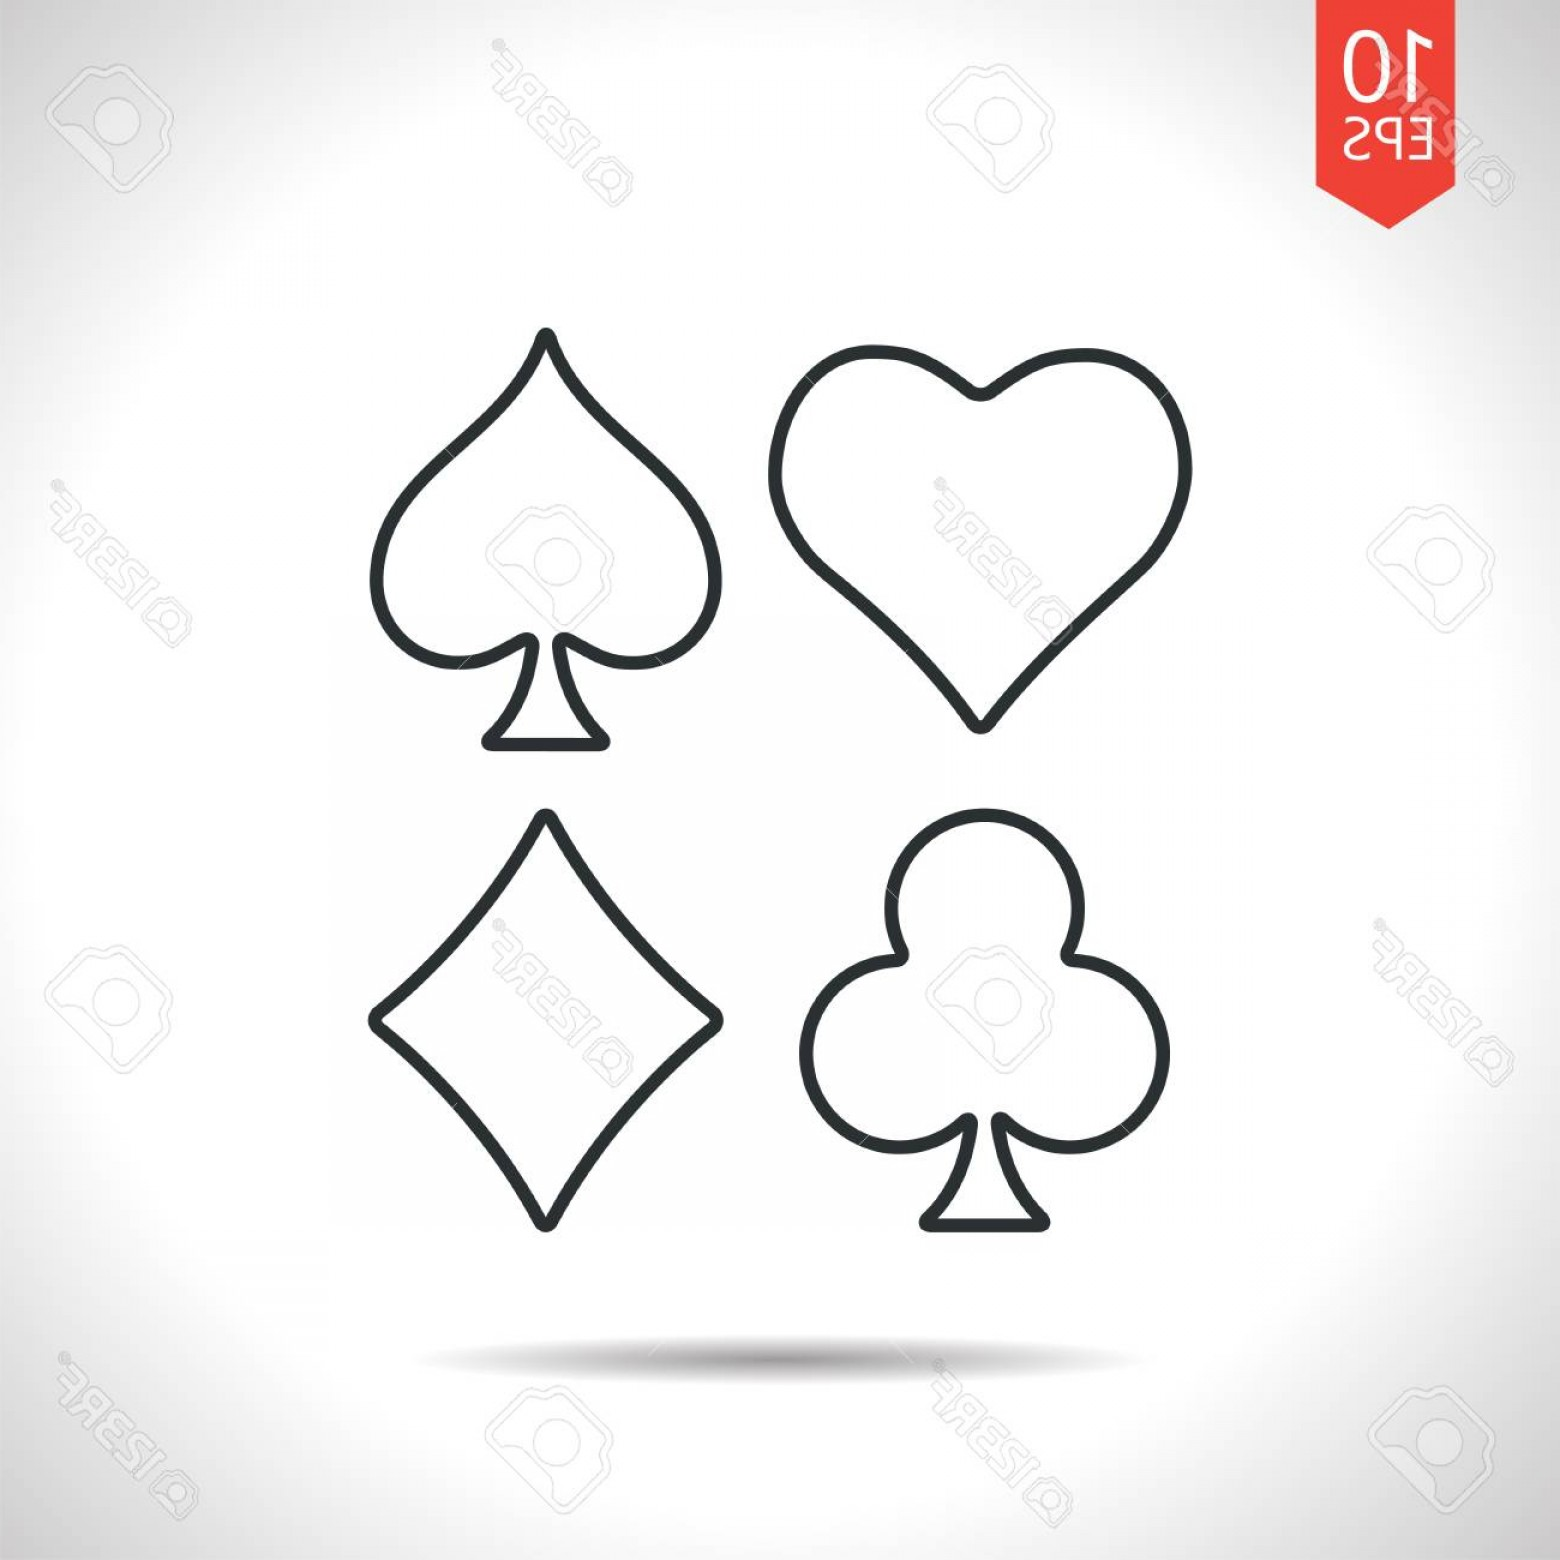 Card Suits Vector Outlines: Photostock Vector Vector Outline Classic Grey Game Casino Cards Suit Icon On White Background